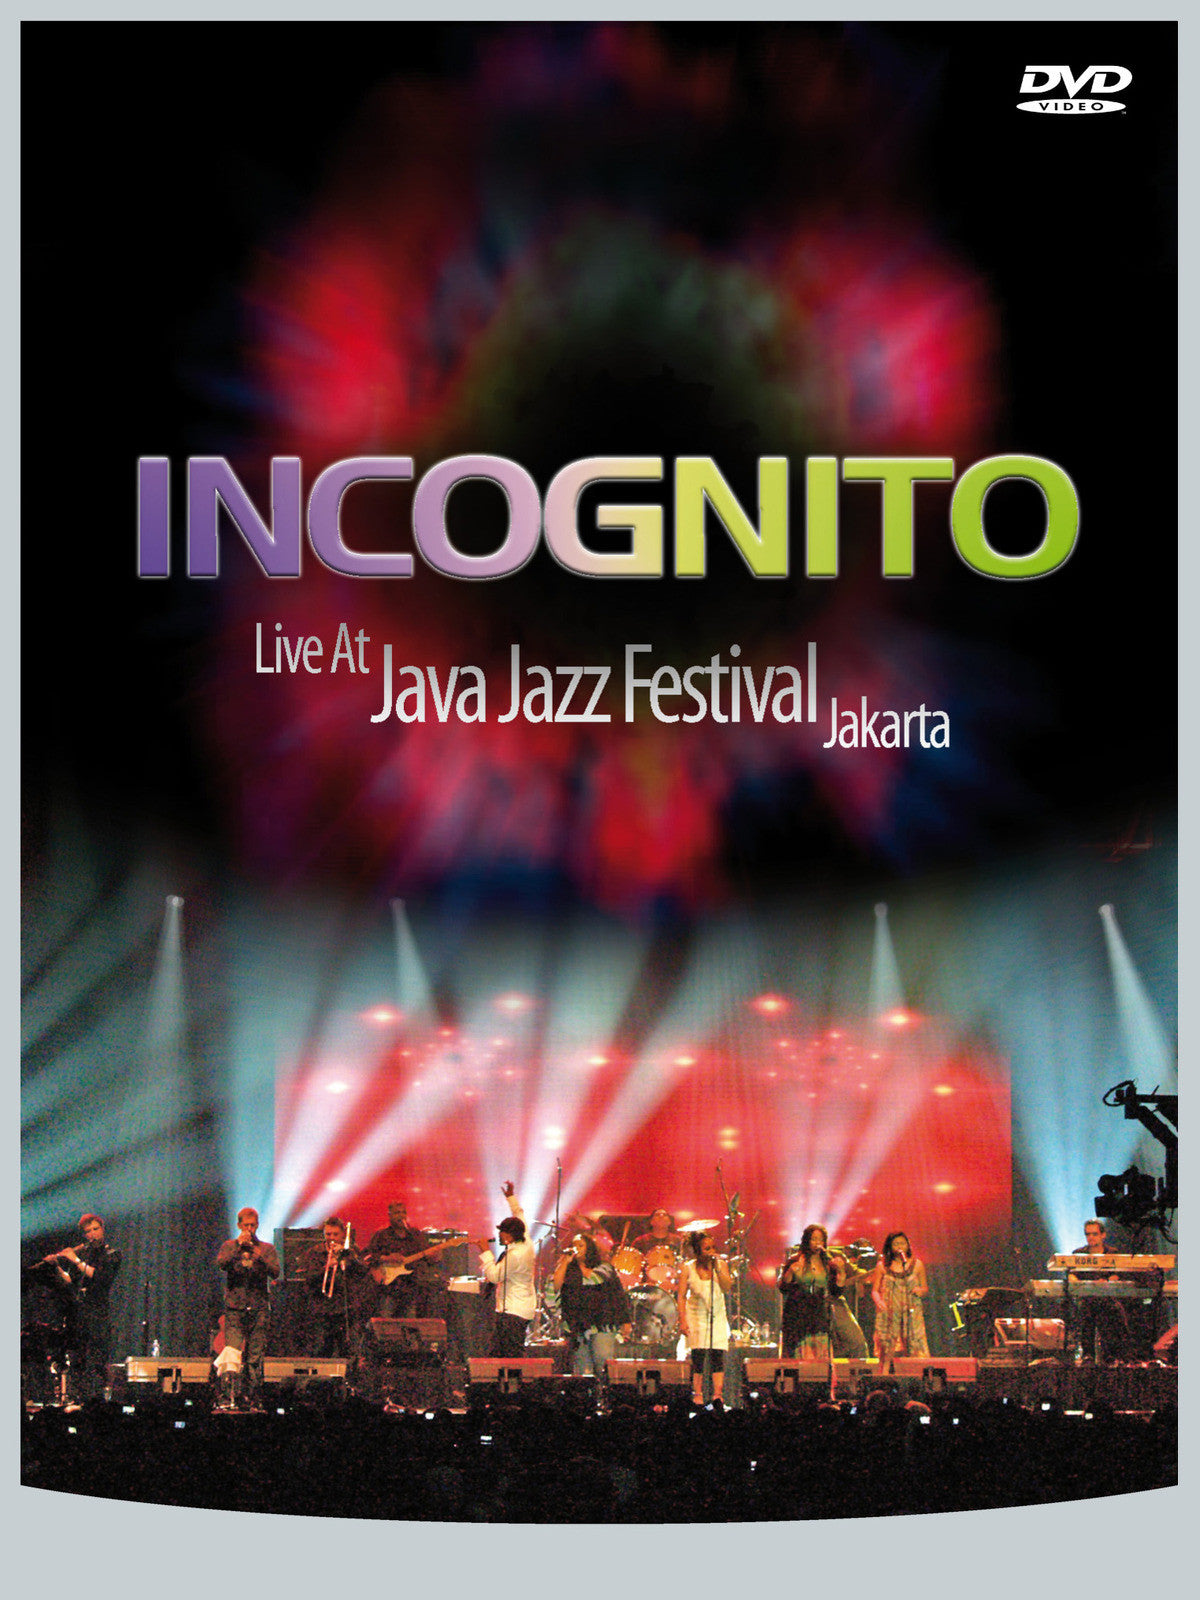 INCOGNITO-LIVE AT JAVA JAZZ FESTIVAL JAKARTA DVD *NEW*